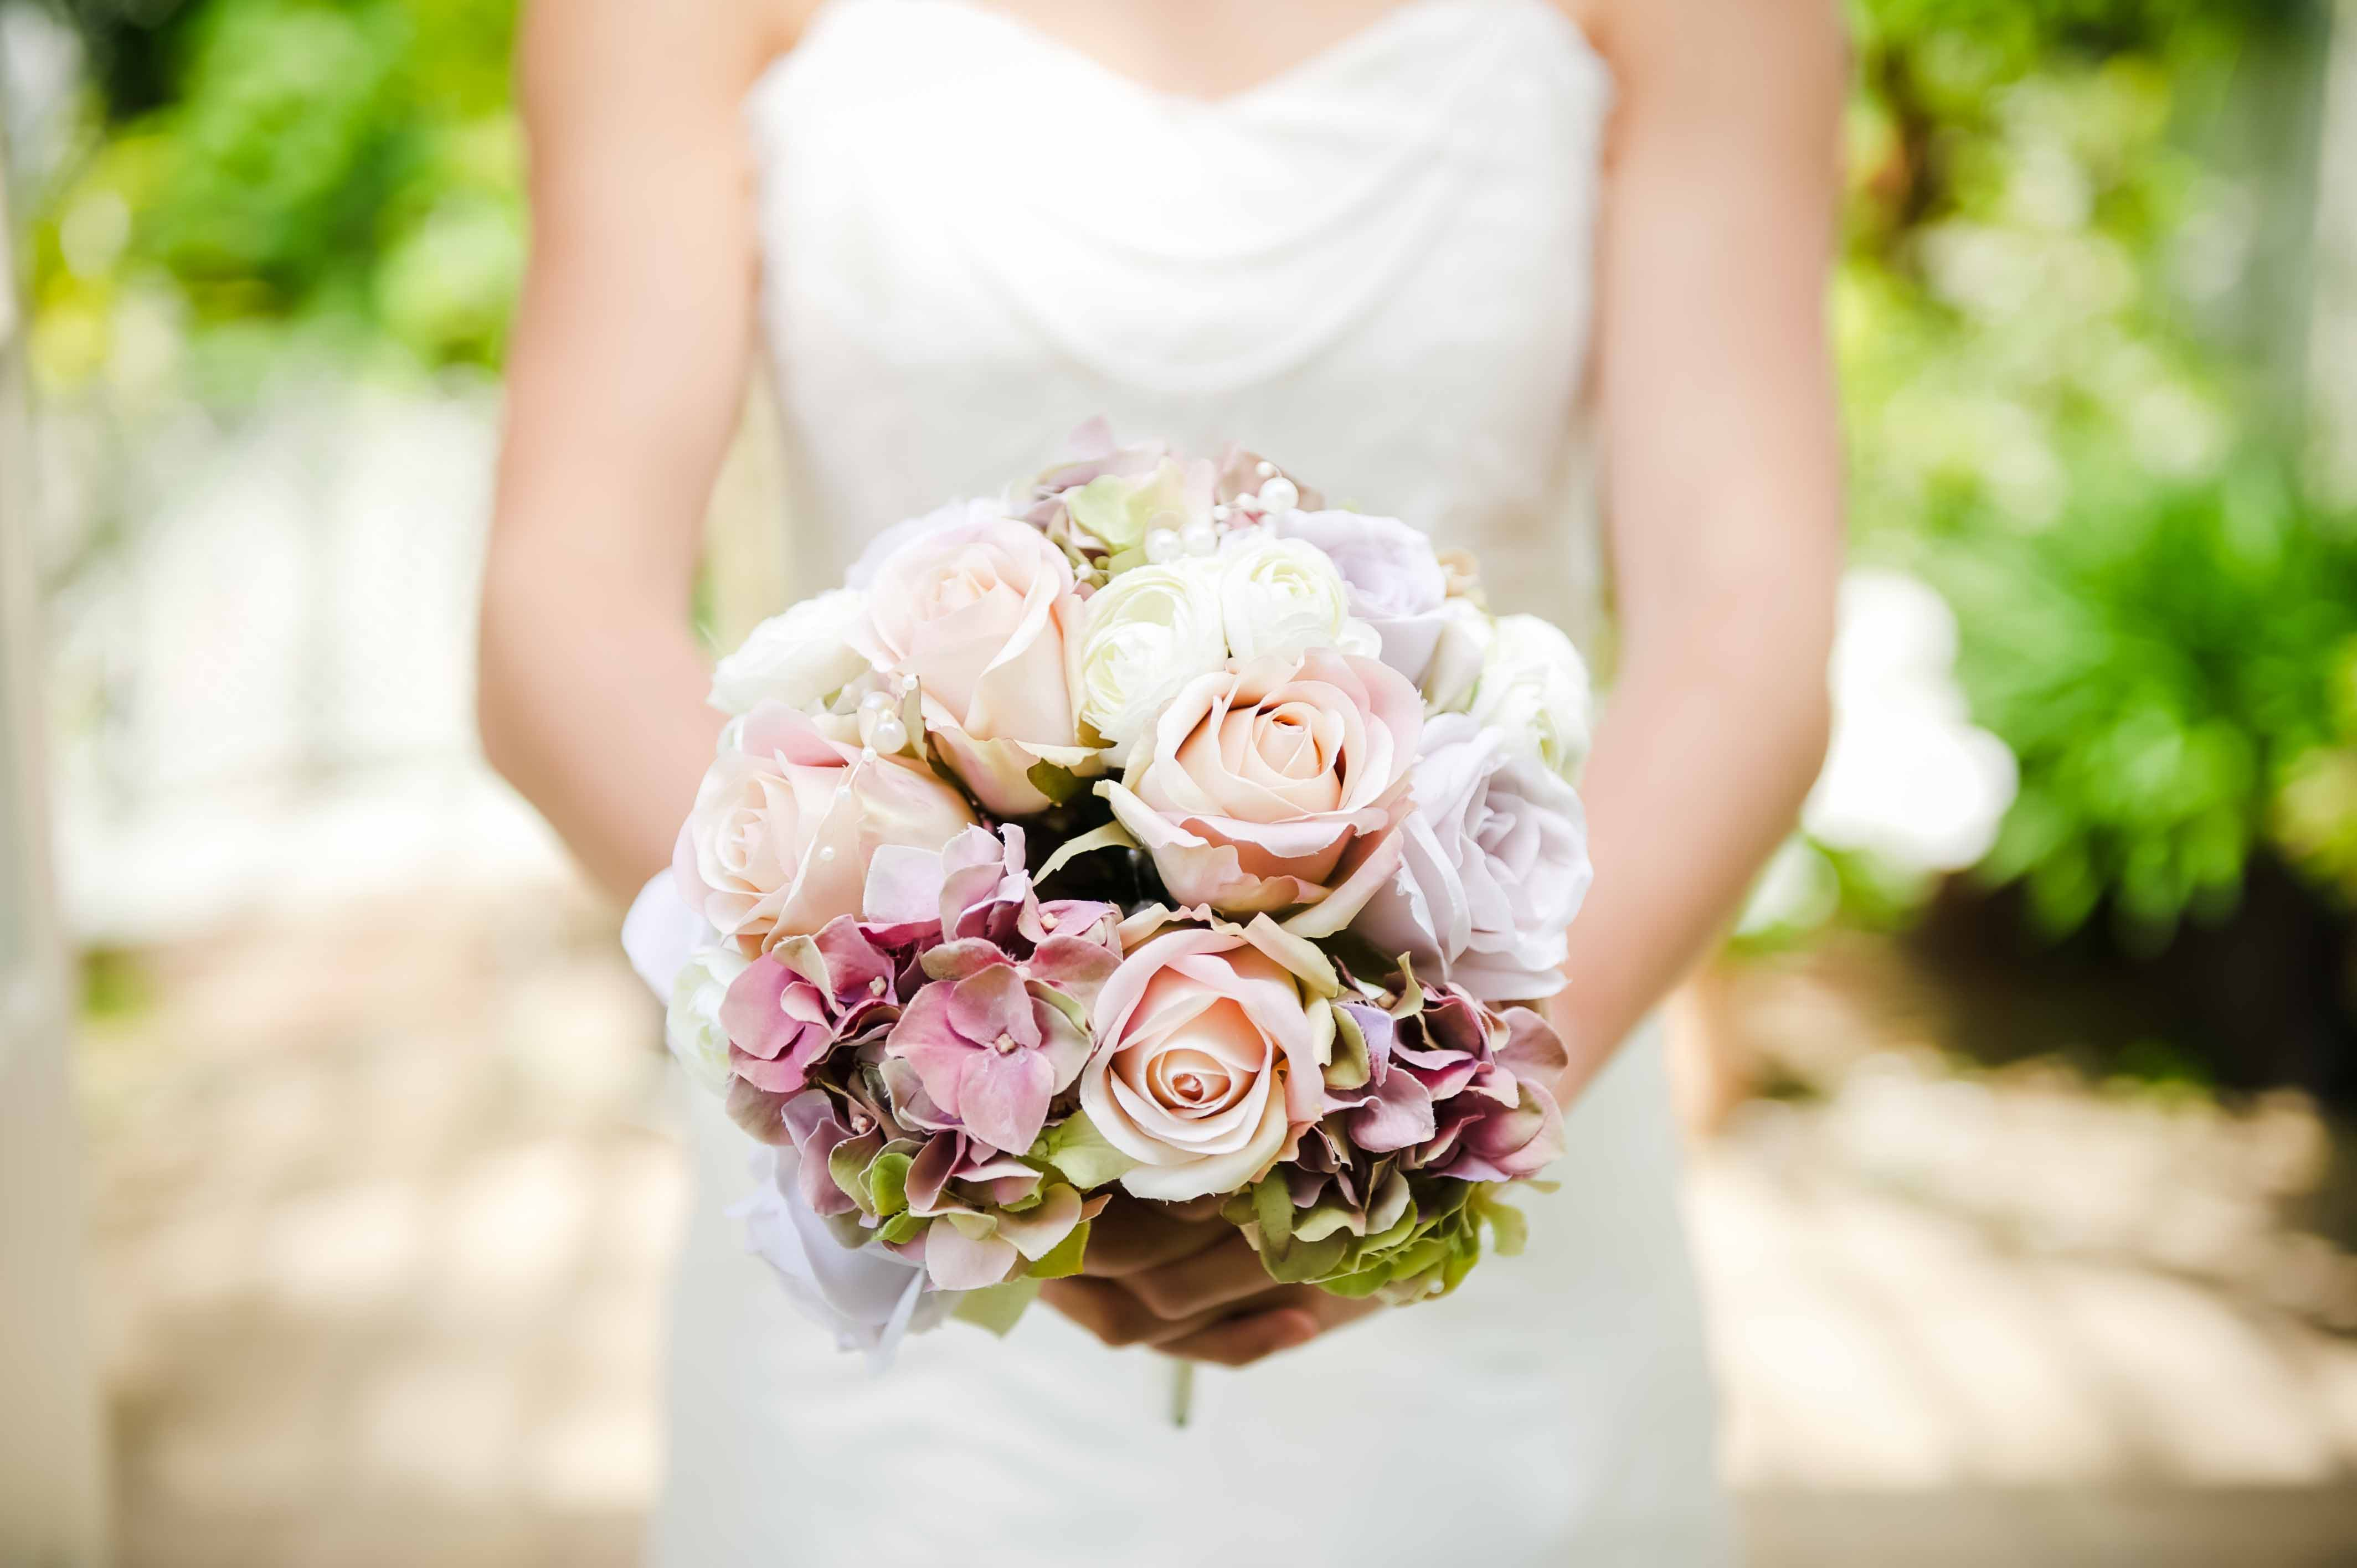 Vintage bouquet artificial wedding flowers chillie breeze vintage bouquet with roses hydrangea and pearls izmirmasajfo